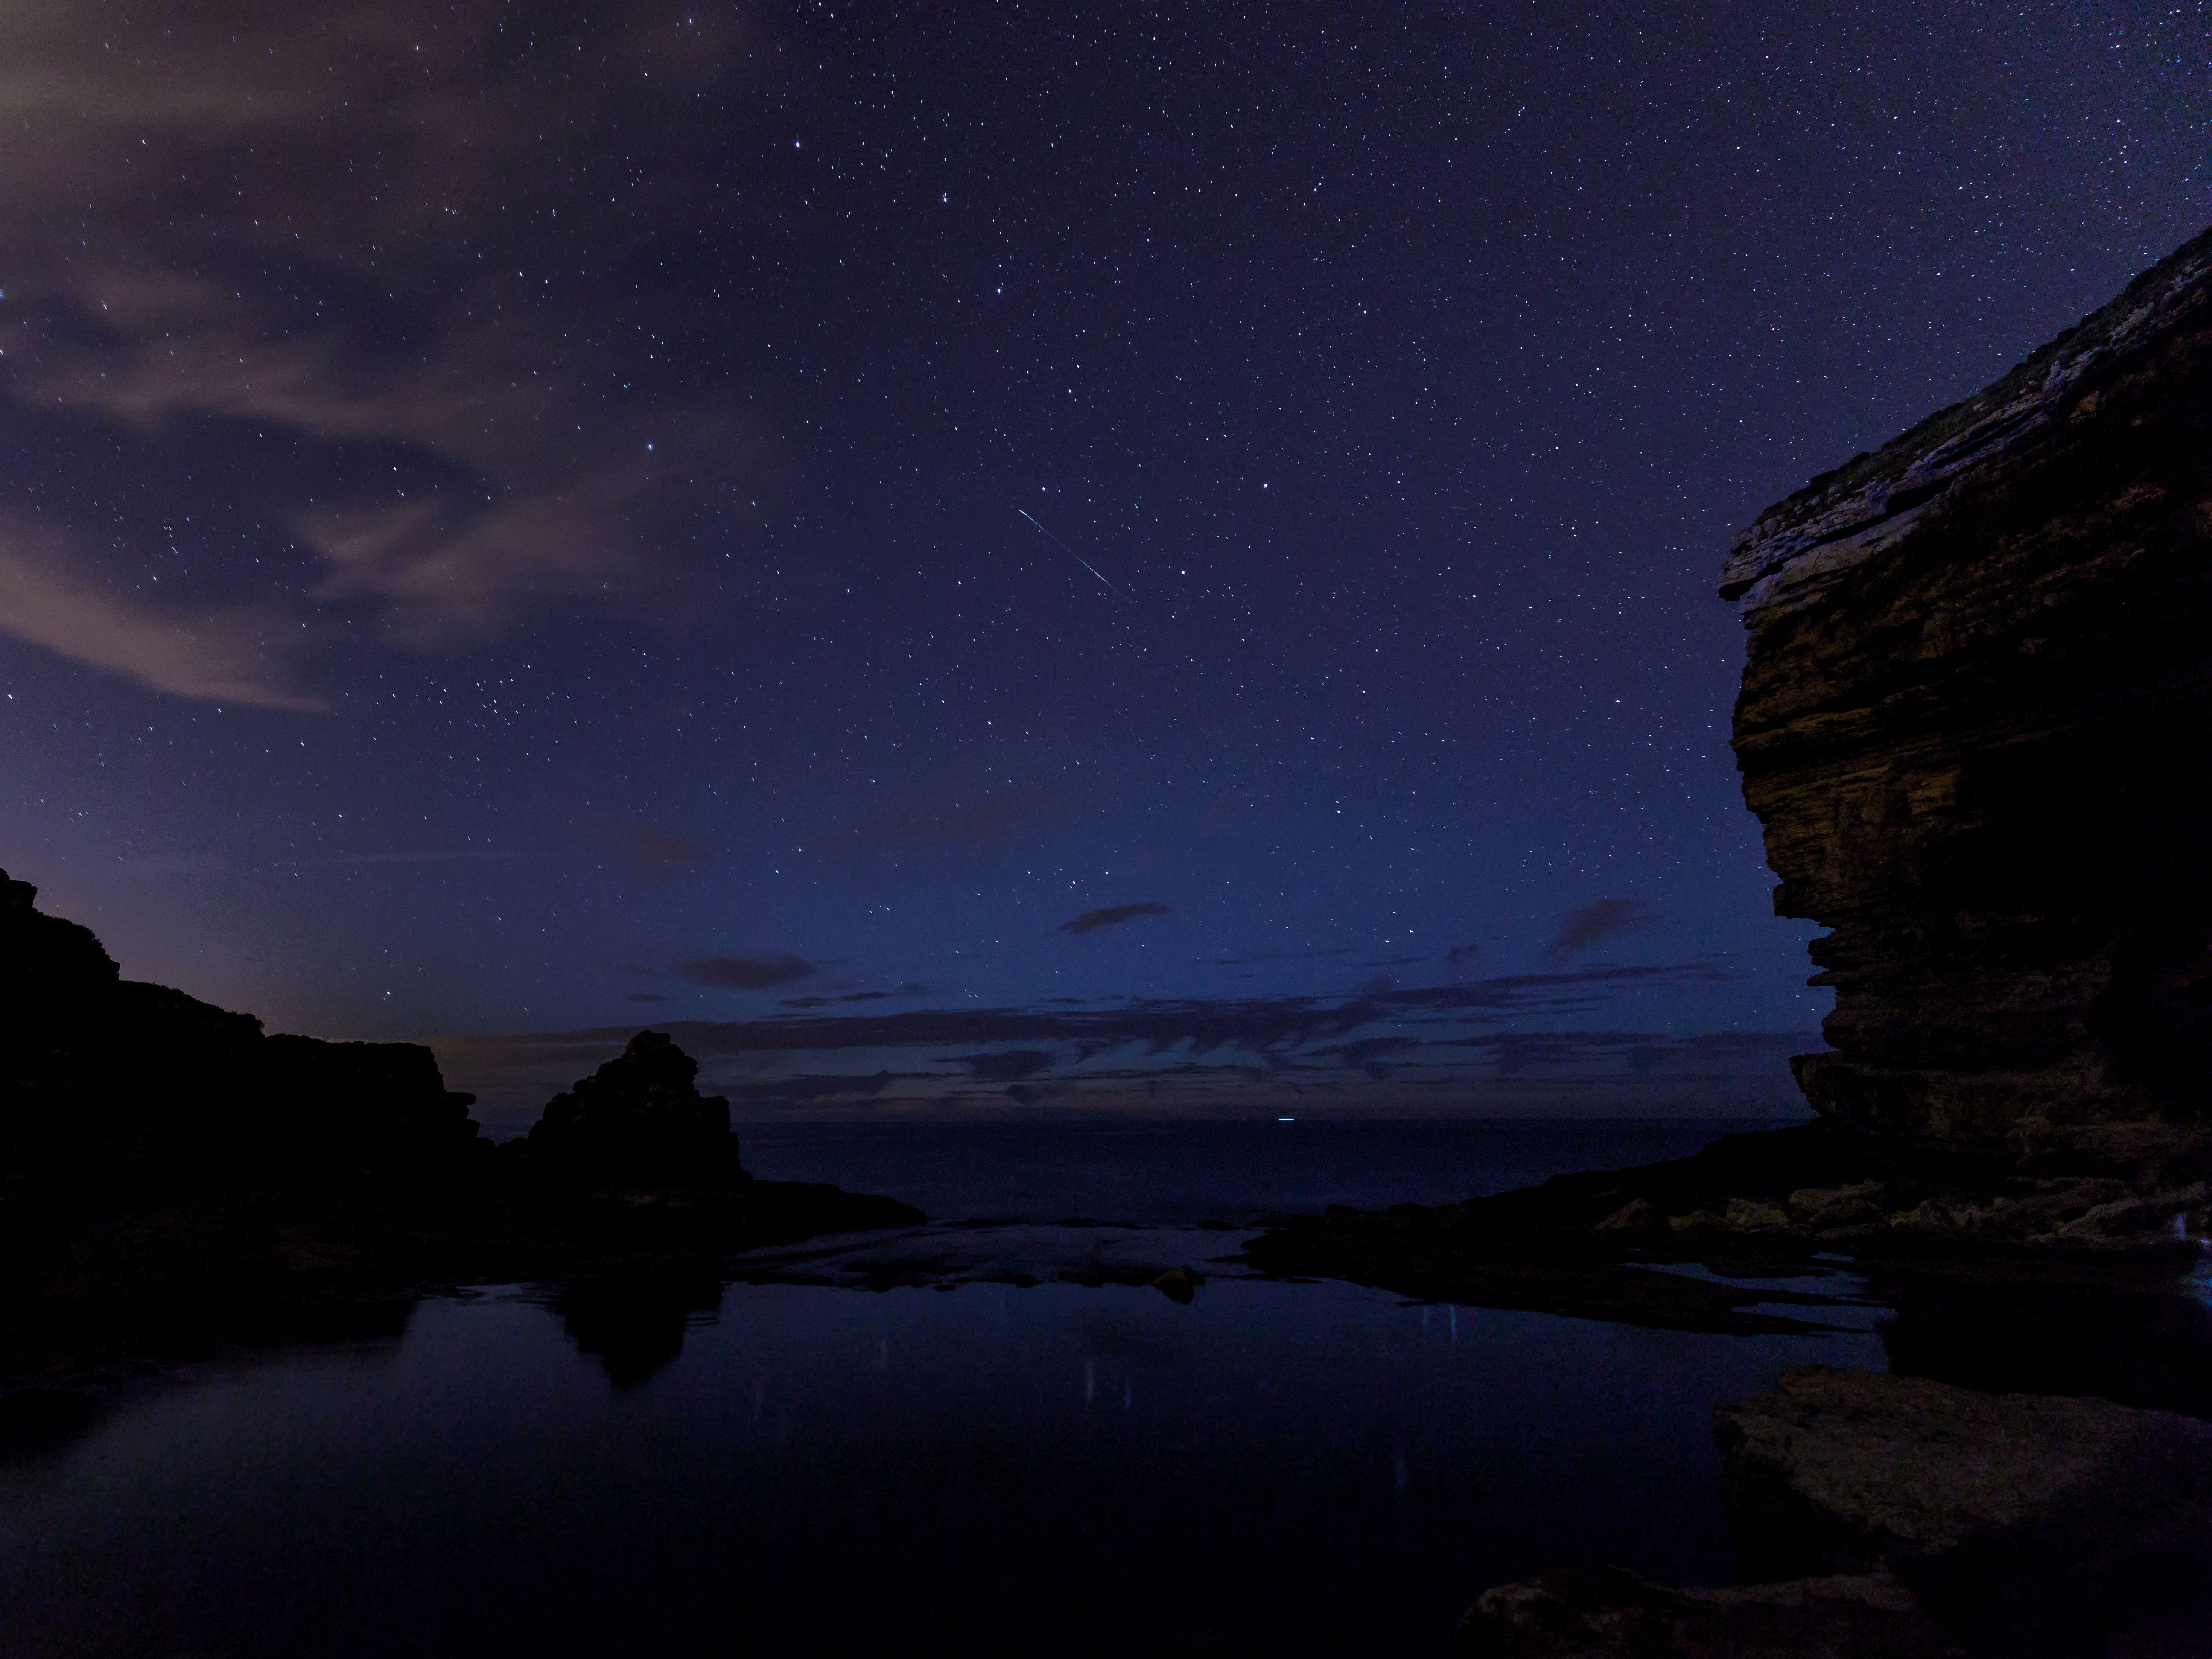 Perseid Meteor Shower 2018: 5 Things To Know